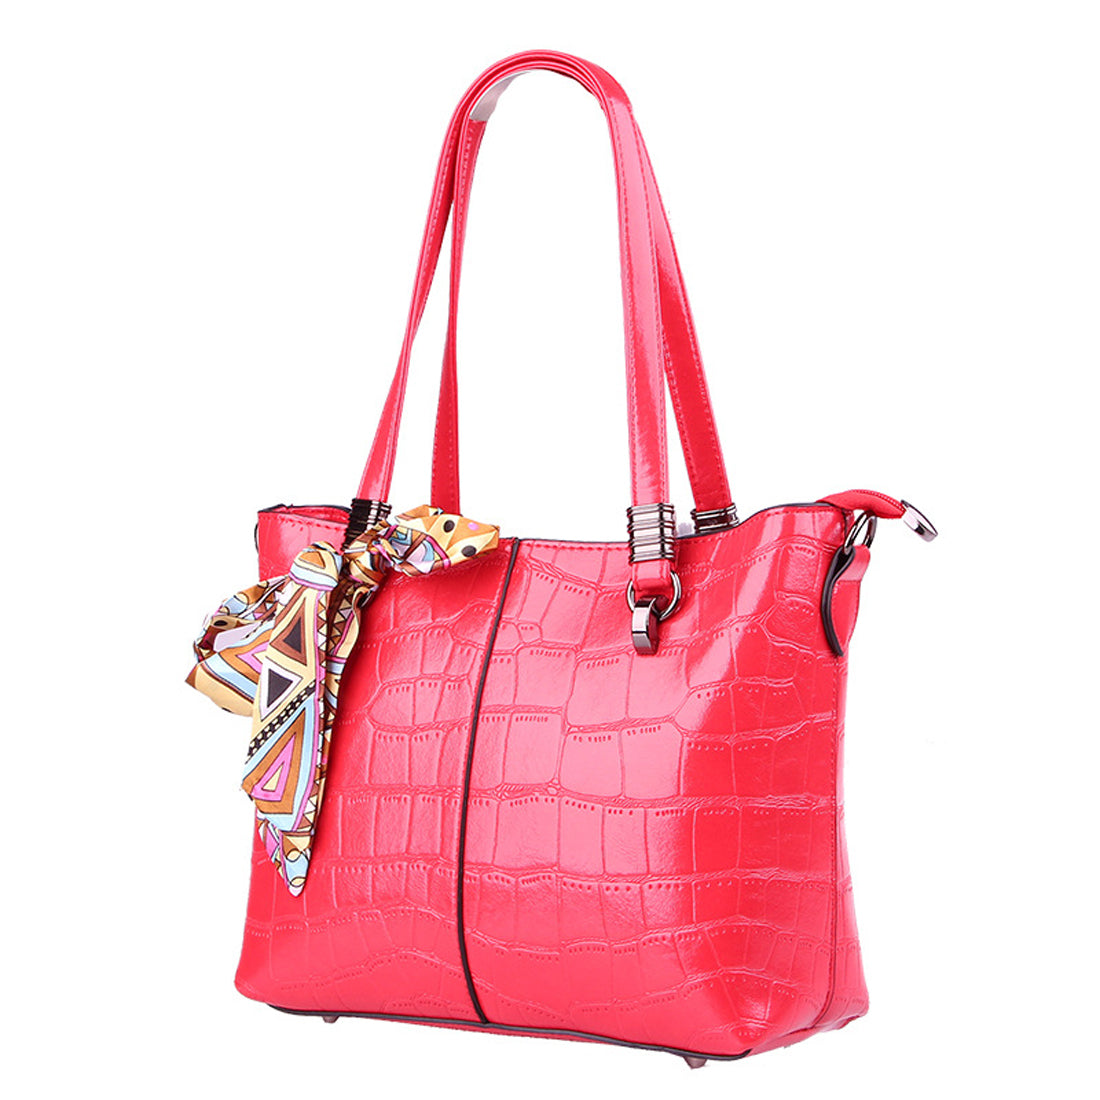 Costbuys  New Stone Pattern Women Bag Scarves Soft Leather Women Handbag  Luxury Shoulder Bag Female Top-Handle handbags - Red